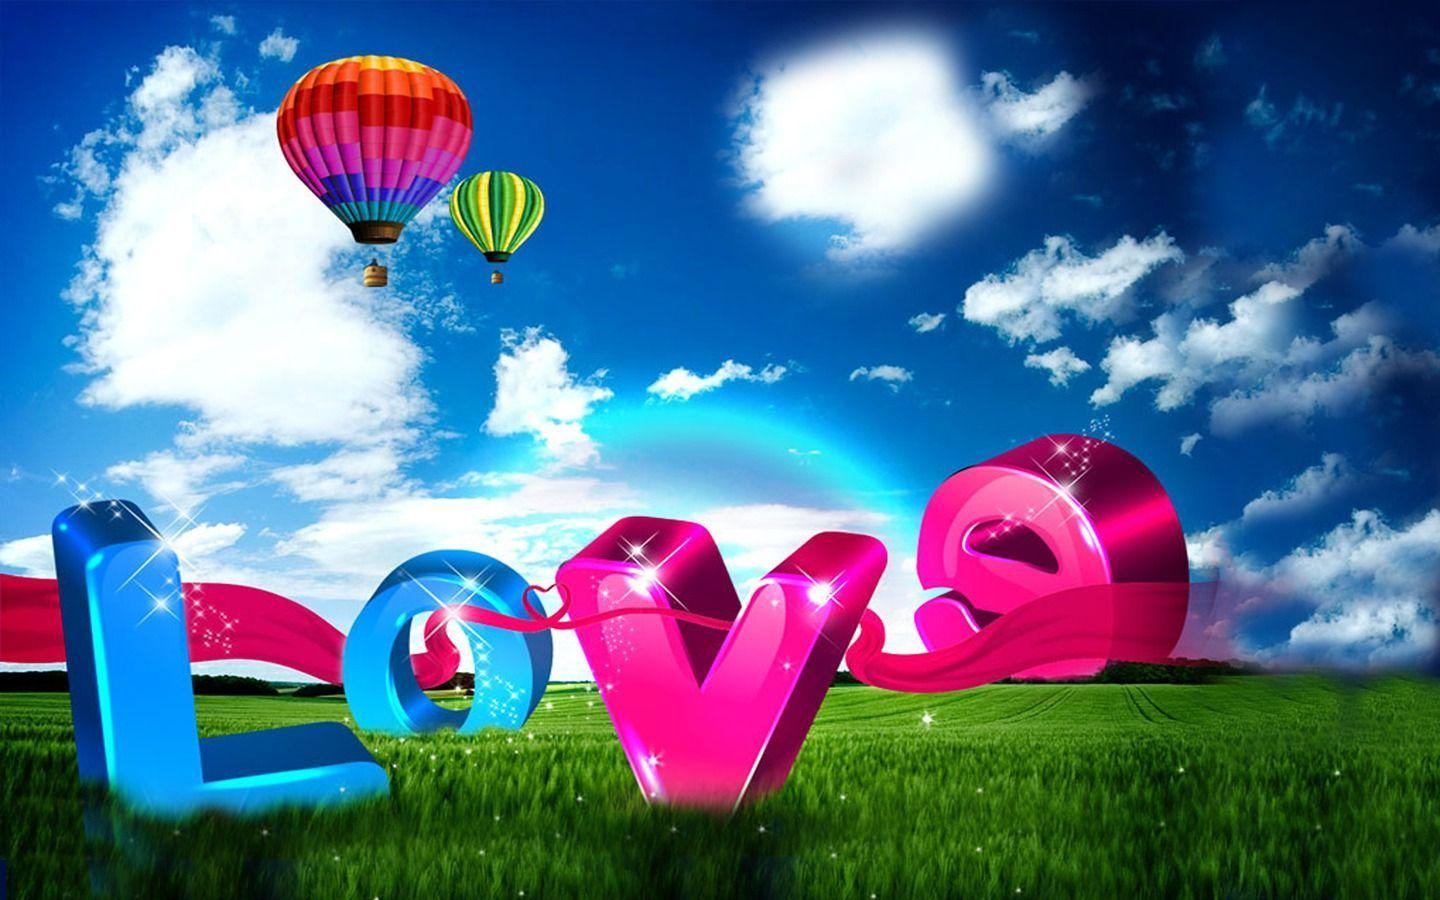 Love Wallpaper 3d Image : Nature Love Wallpapers - Wallpaper cave